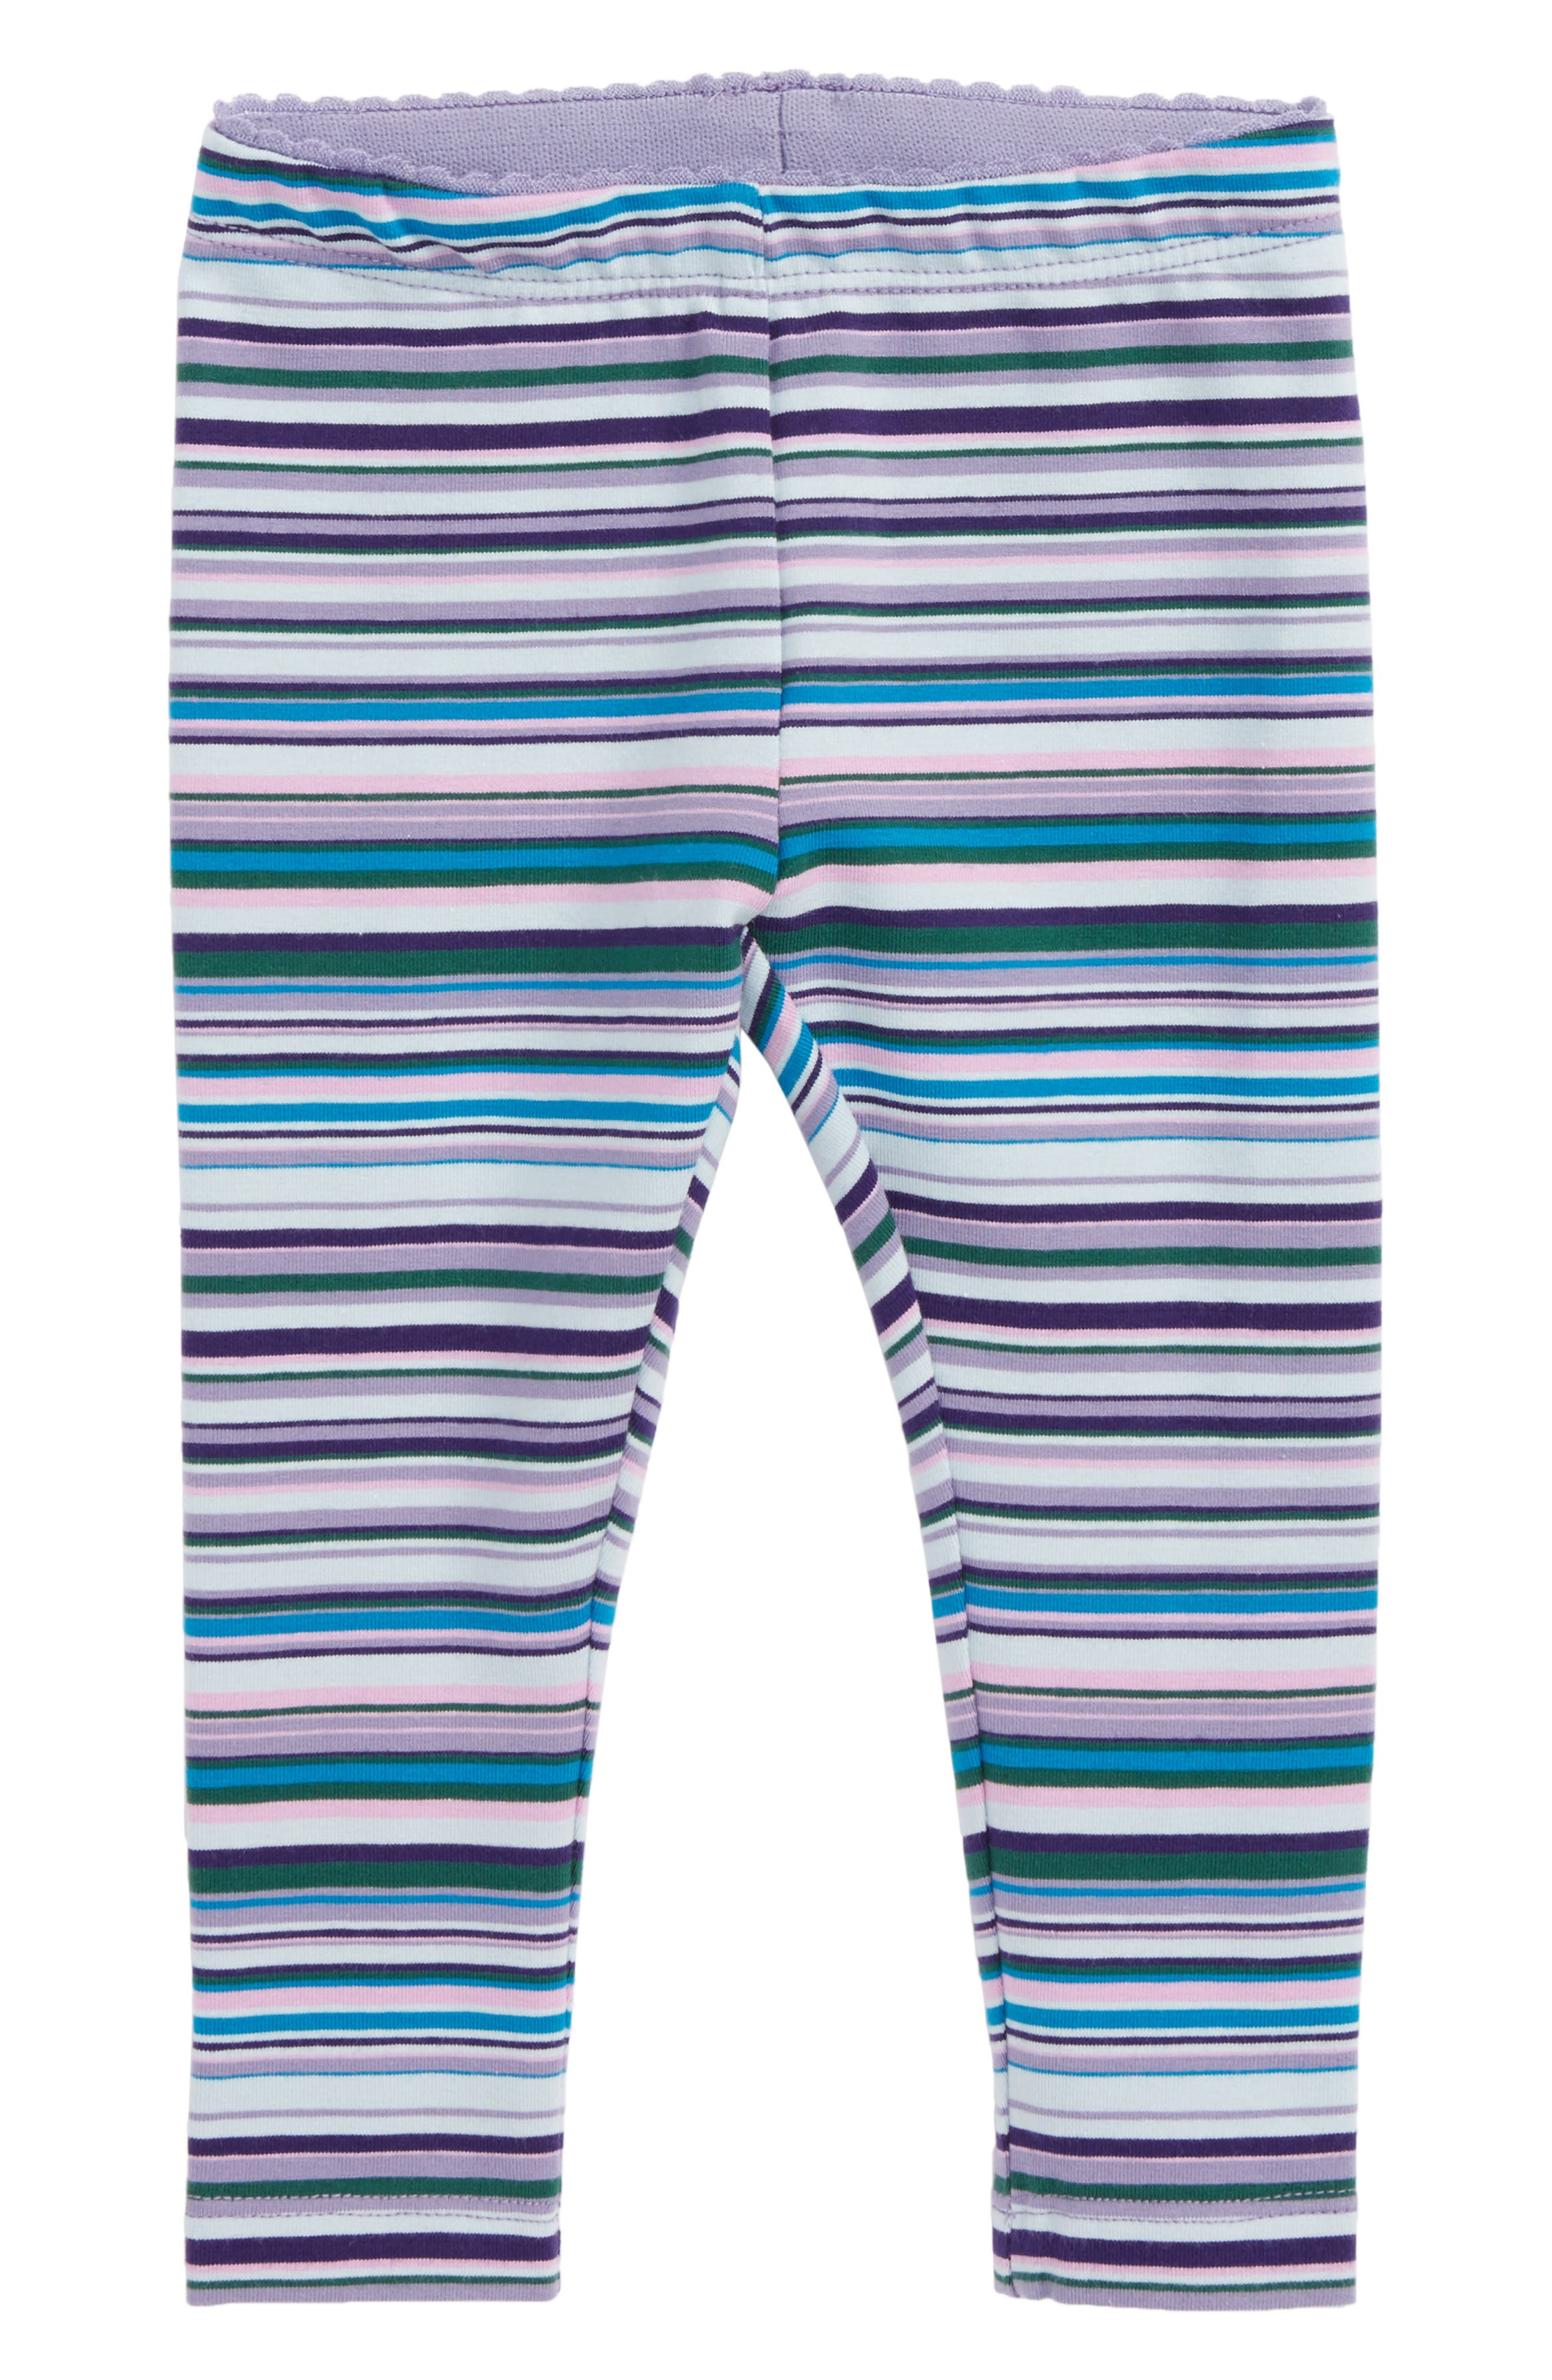 Stripe Leggings,                         Main,                         color, 519